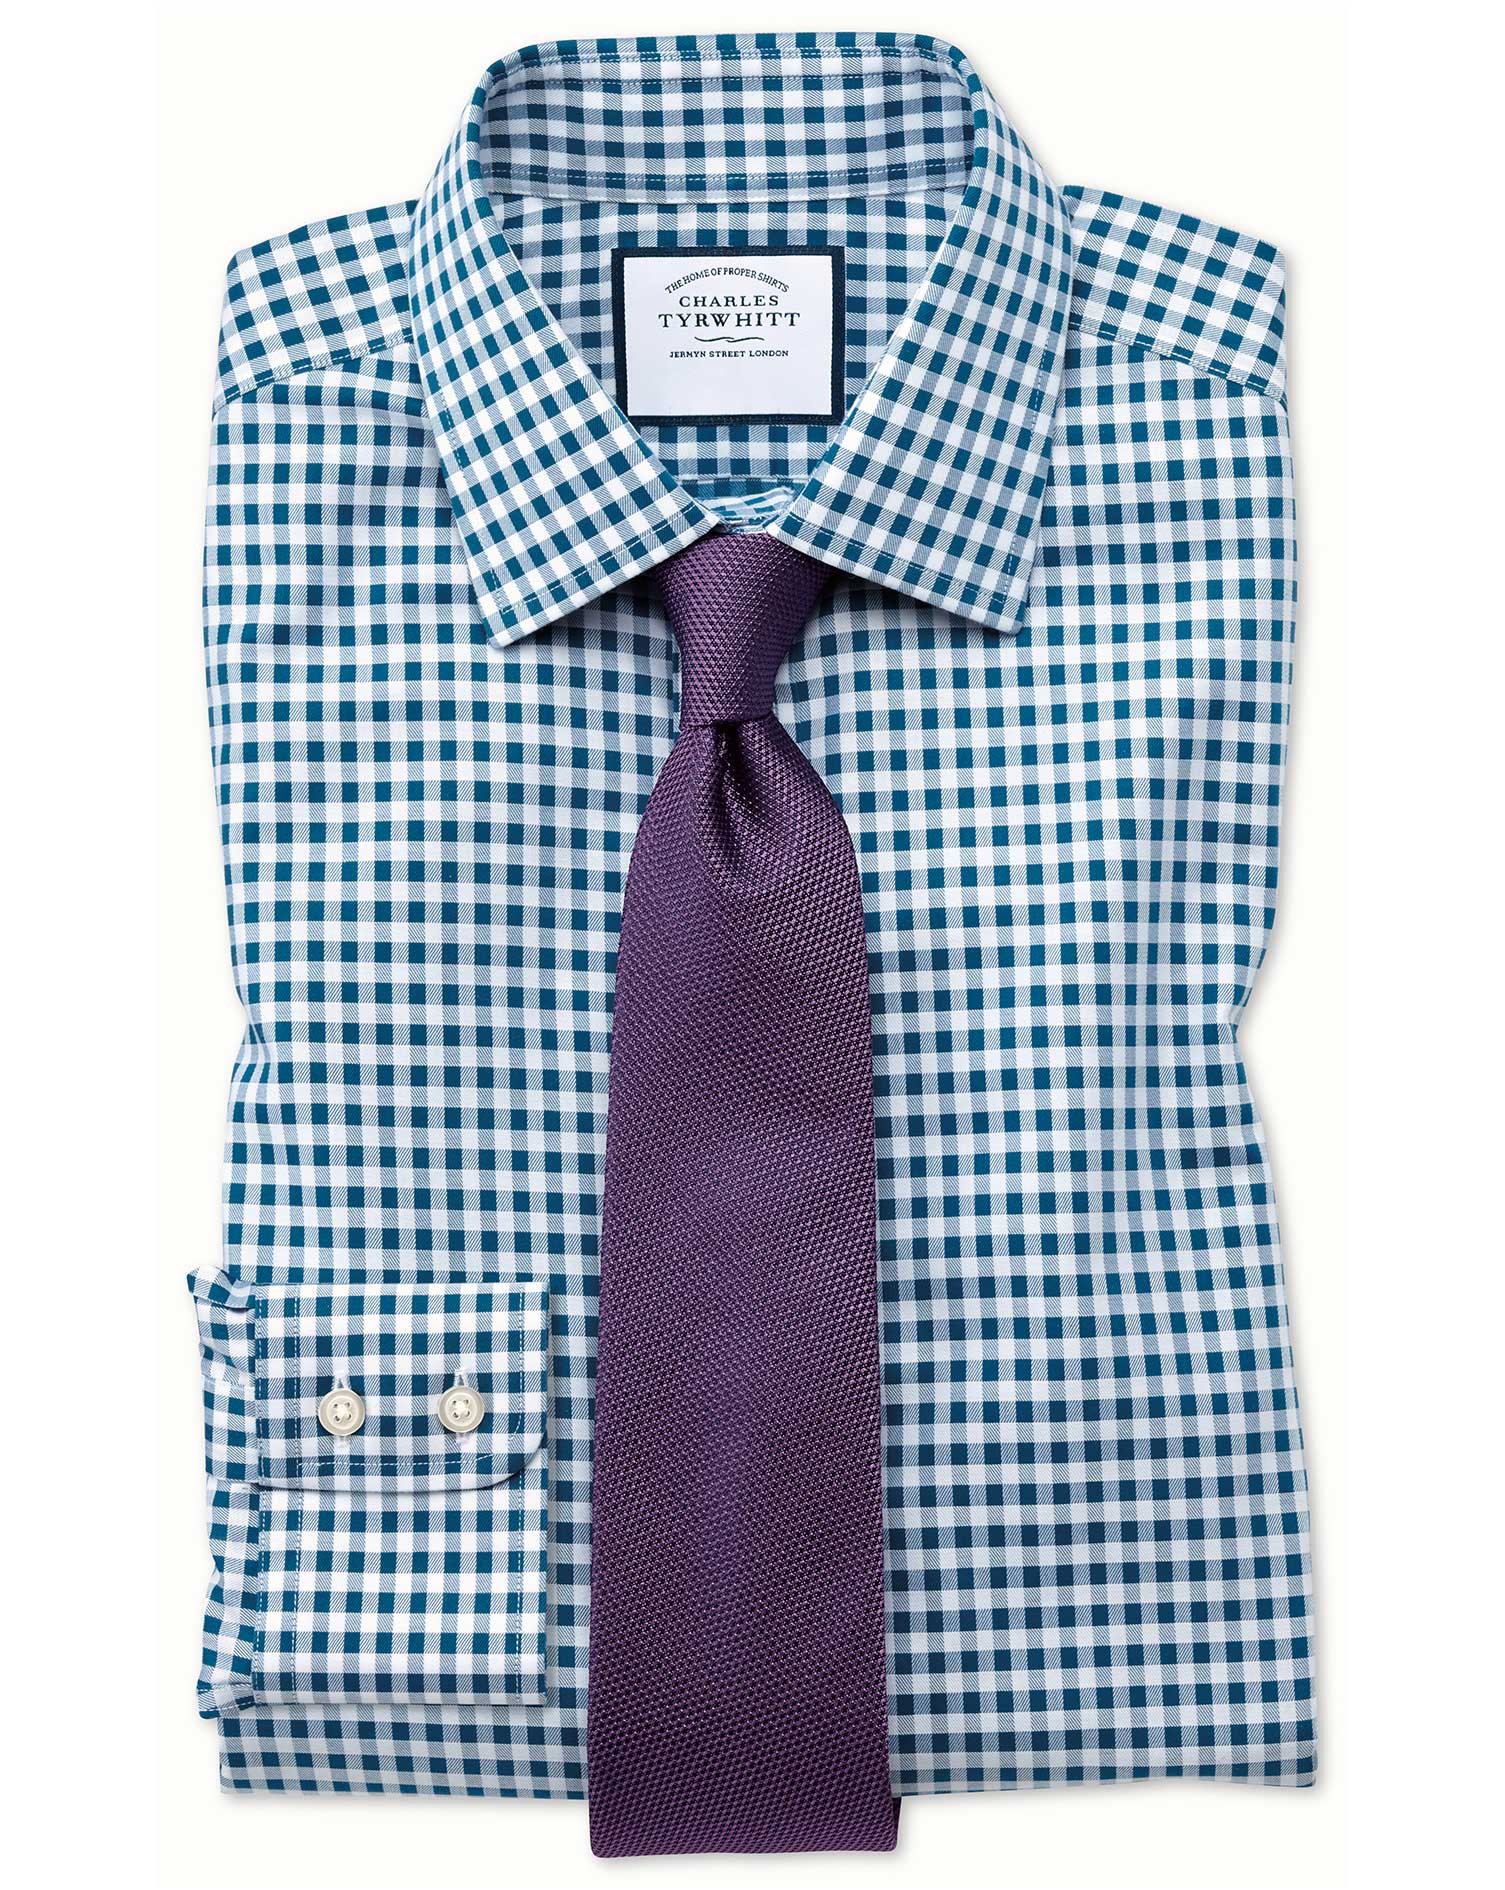 Slim Fit Non-Iron Gingham Teal Cotton Formal Shirt Single Cuff Size 16/33 by Charles Tyrwhitt